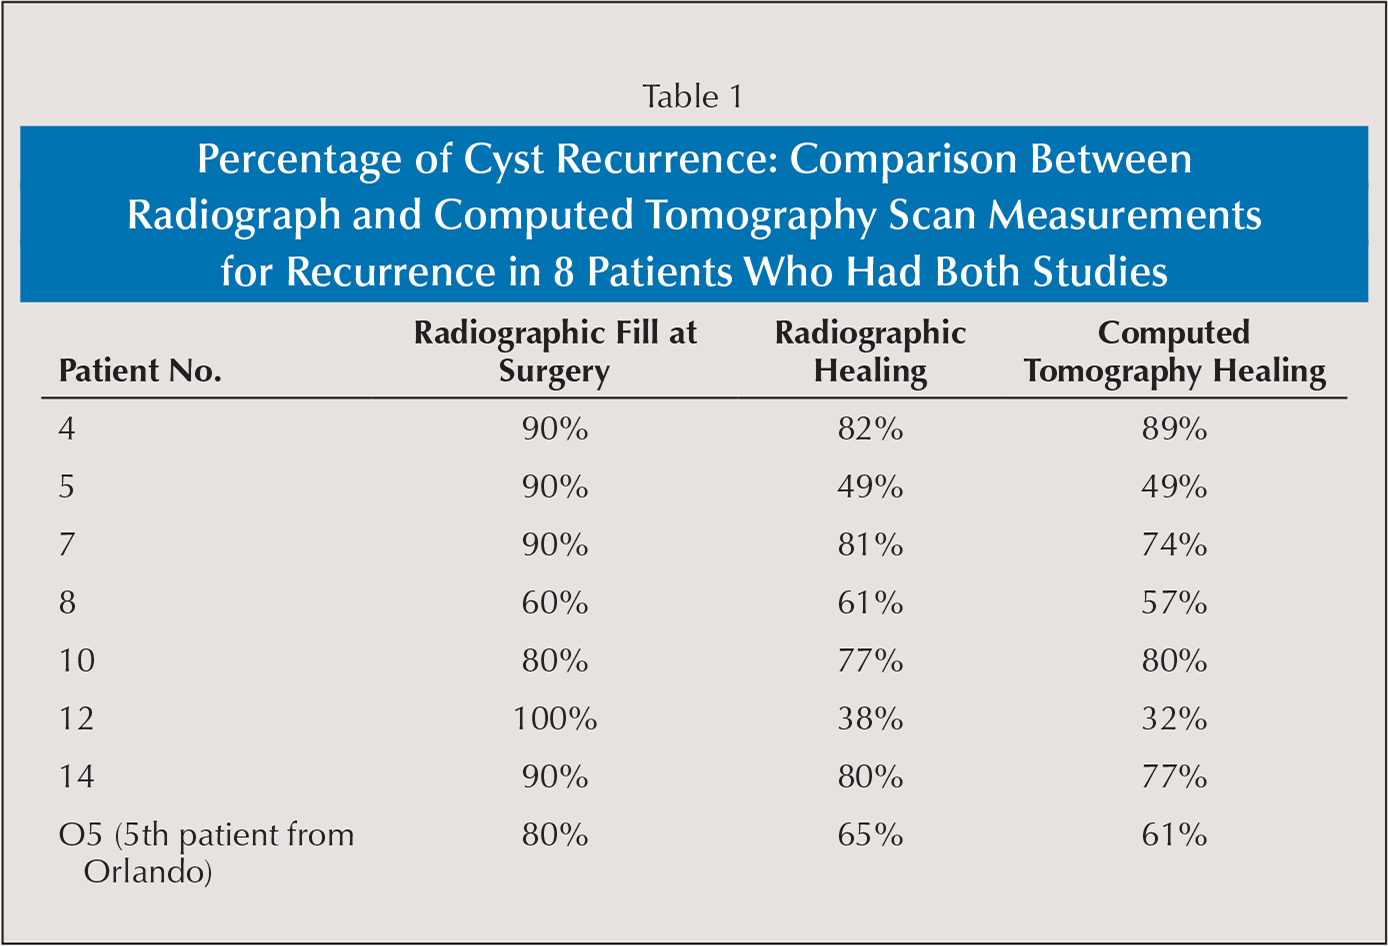 Percentage of Cyst Recurrence: Comparison Between Radiograph and Computed Tomography Scan Measurements for Recurrence in 8 Patients Who Had Both Studies